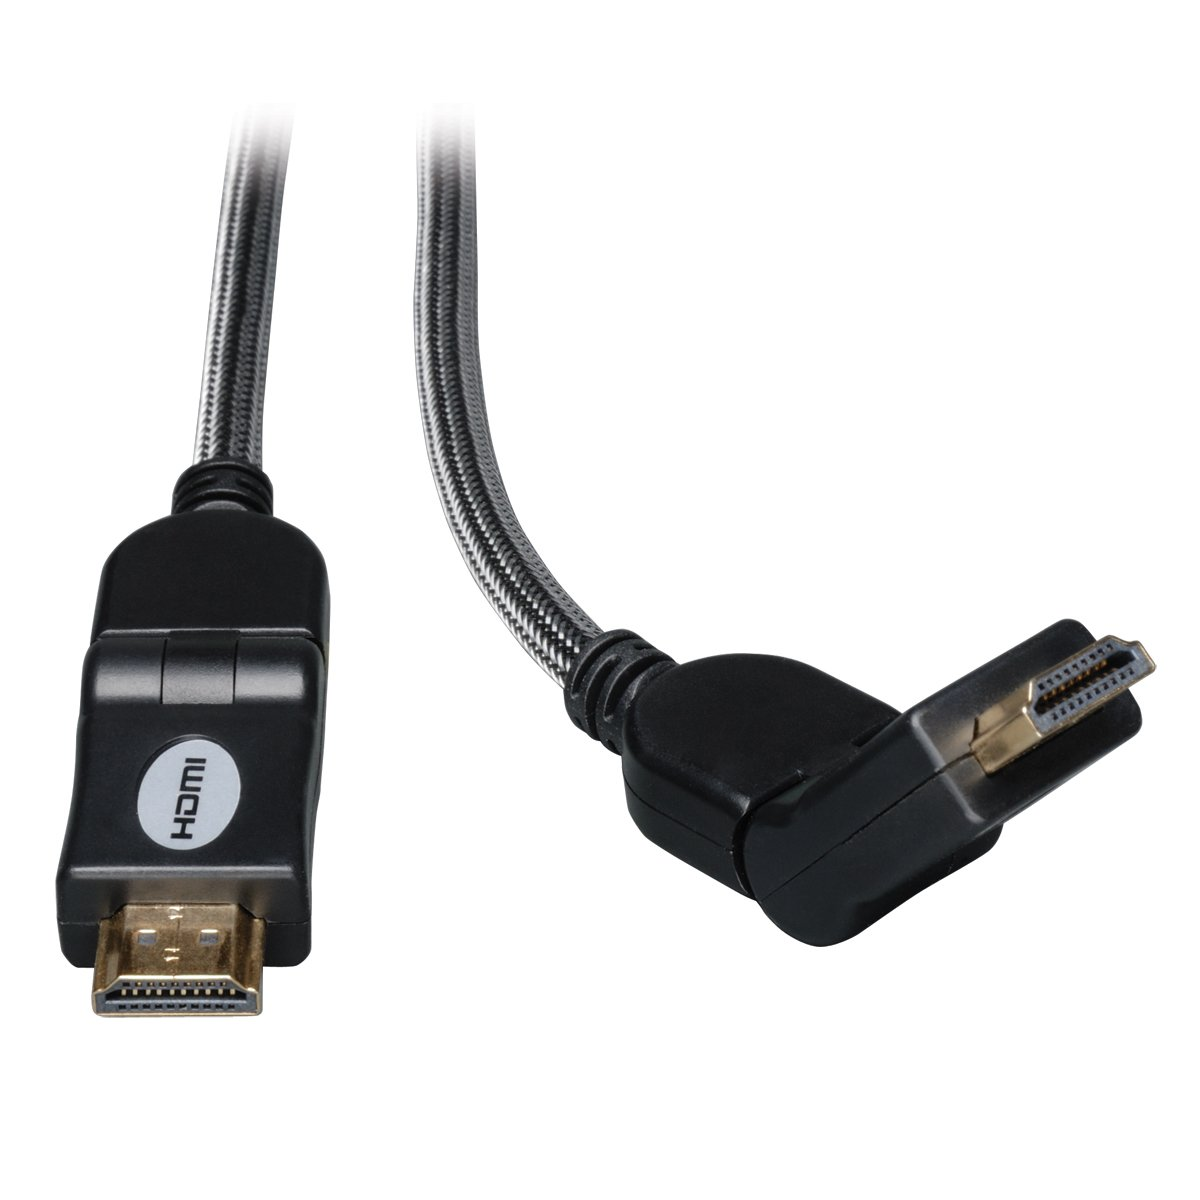 Amazon.com: Tripp Lite High-Speed HDMI Cable w/ Gripping Connectors 4K M/M Black 16ft 16 (P568-016-BK-GRP): Electronics